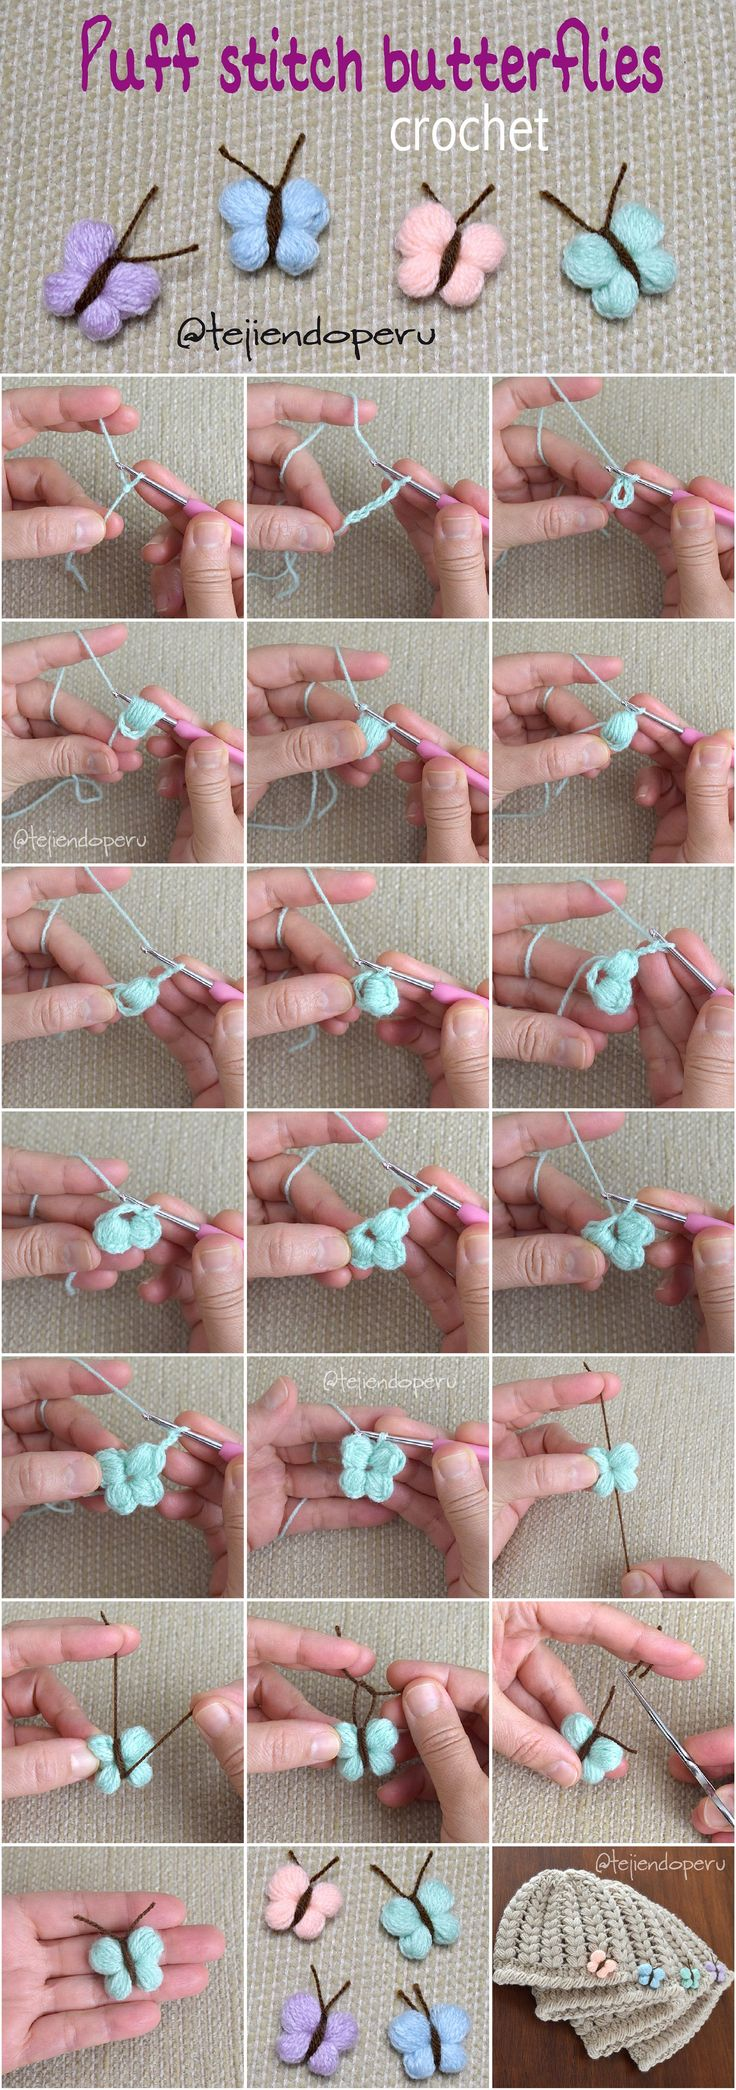 Crochet: puff stitch butterflies! Beautiful and easy :)